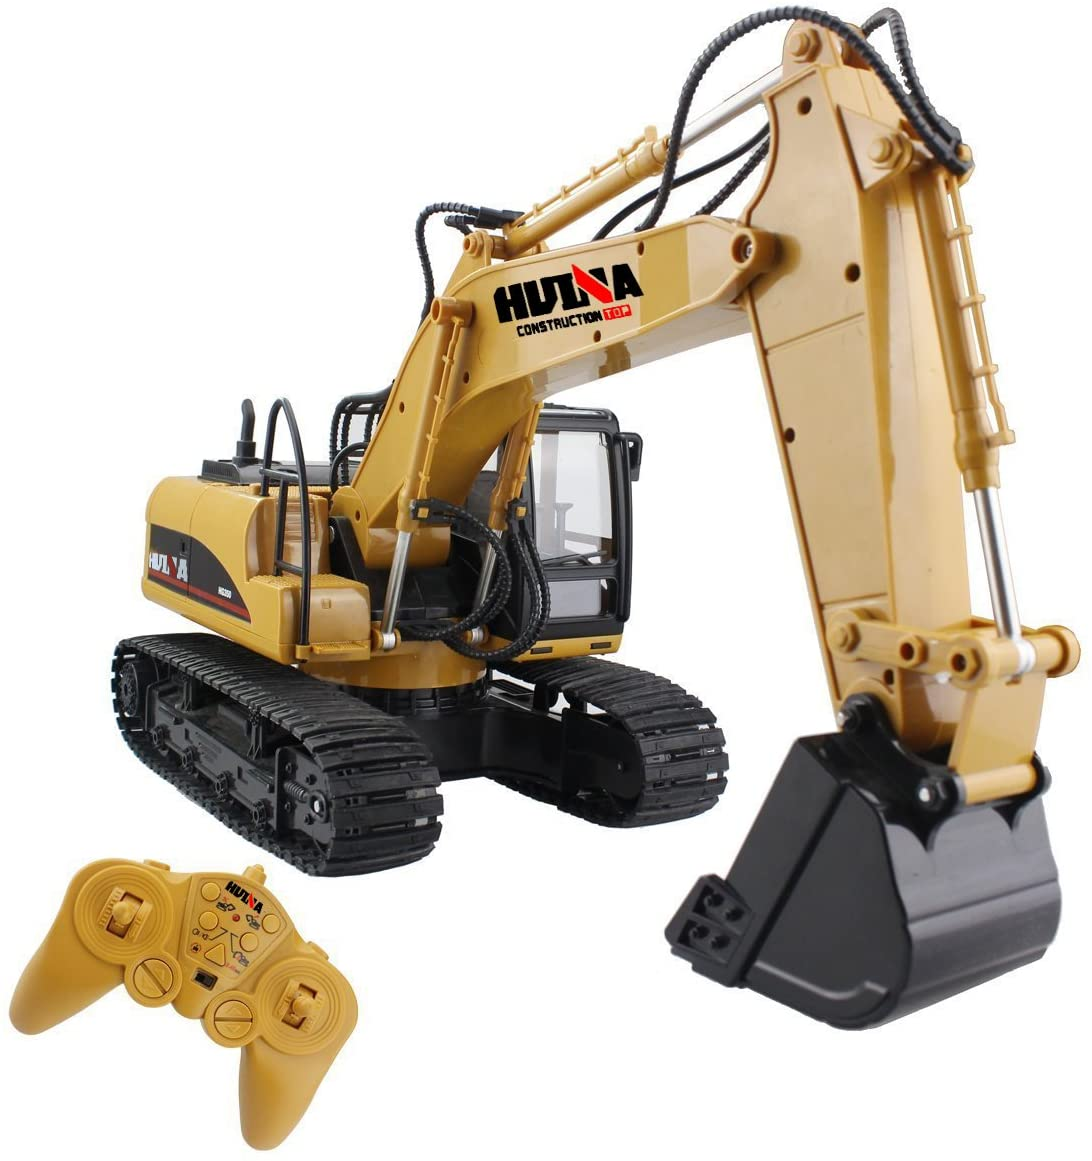 1/14 Rc Truck Caterpillar Alloy Tractor Engineering Car 2.4ghz Radio Controlled Car 15 Channel Rc Excavator Toy For Boy as shown